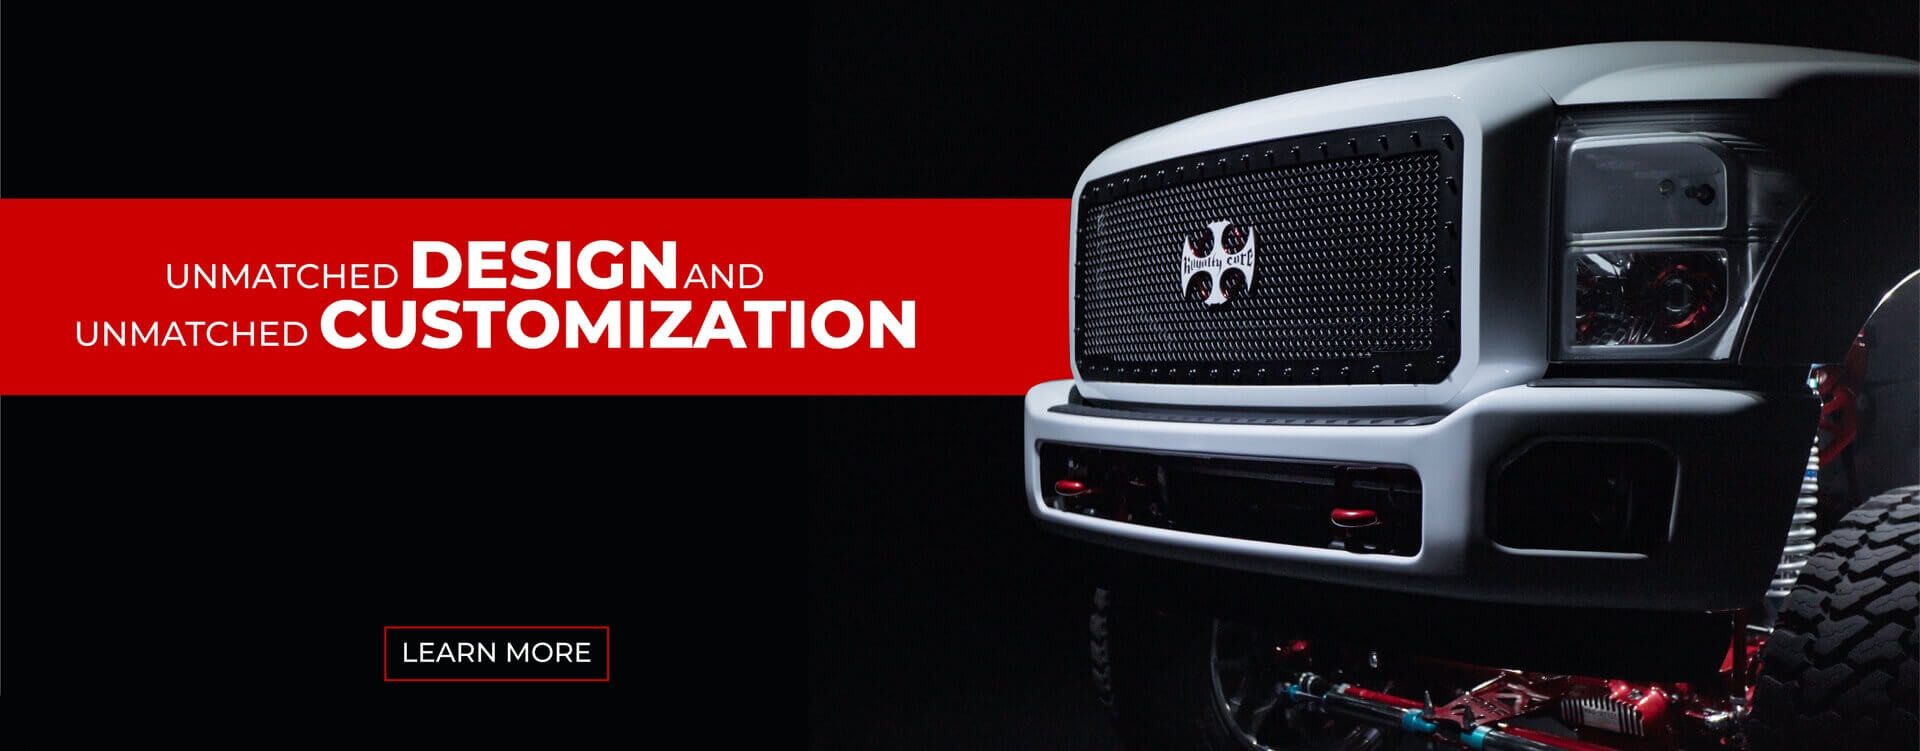 hight resolution of unmatched design and customization